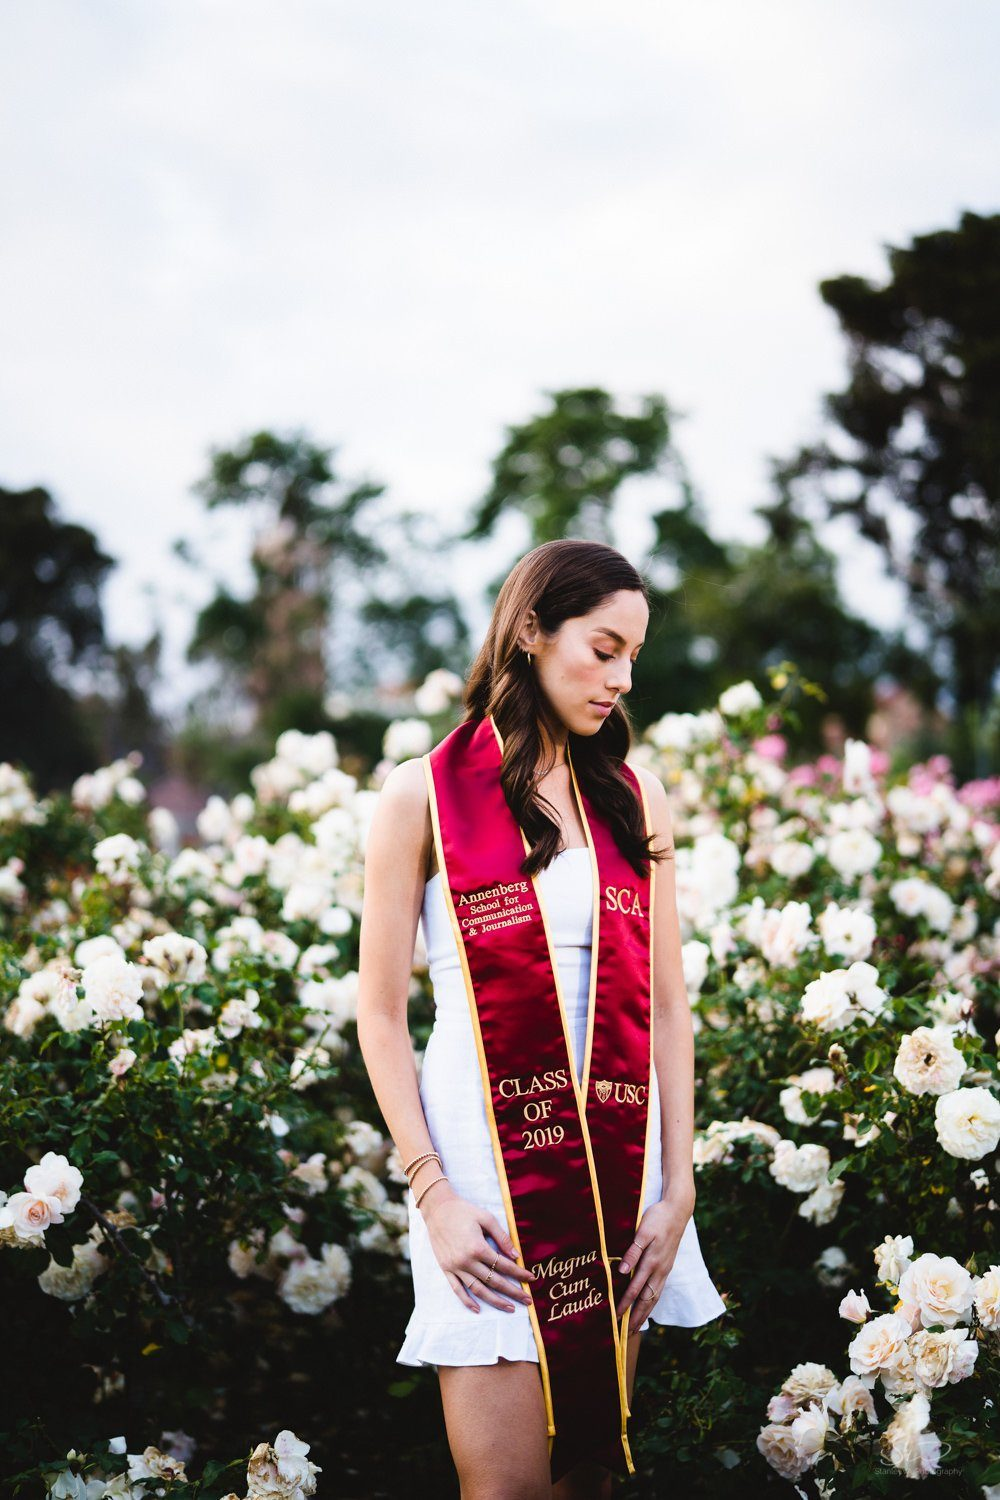 graduating senior with sash standing in the usc rose garden | usc graduation photographer los angeles